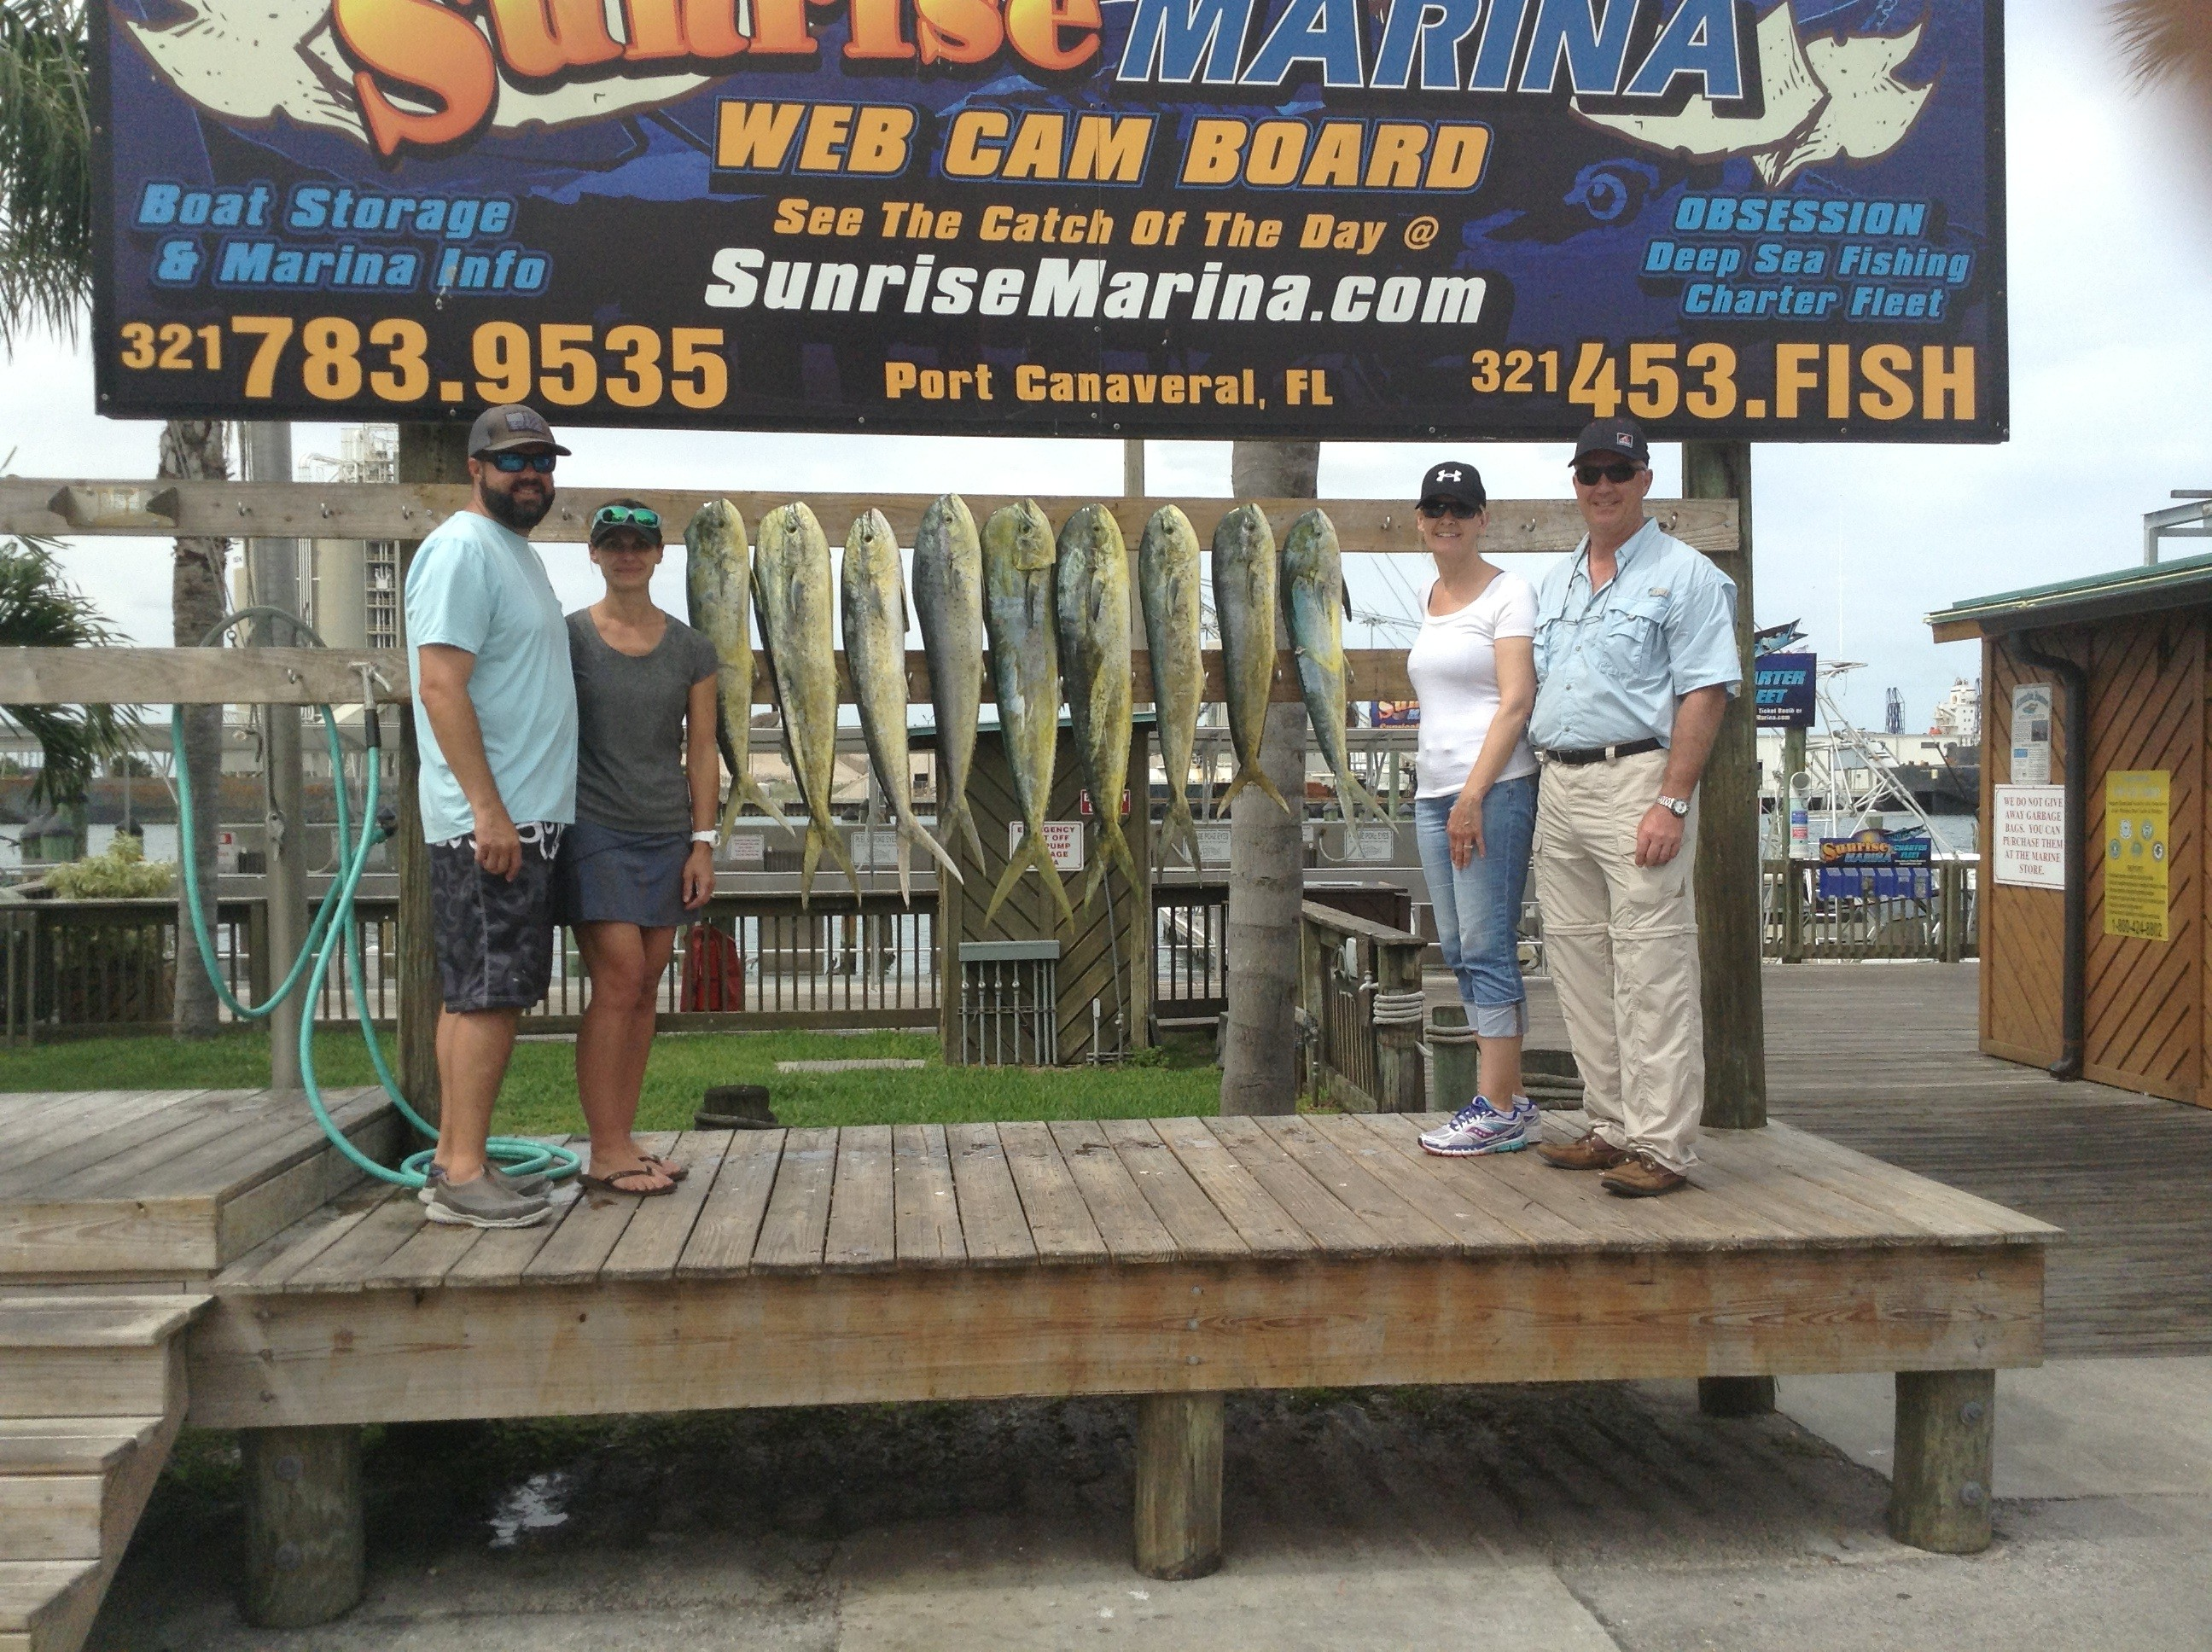 Dolphin charter fishing – port canaveral